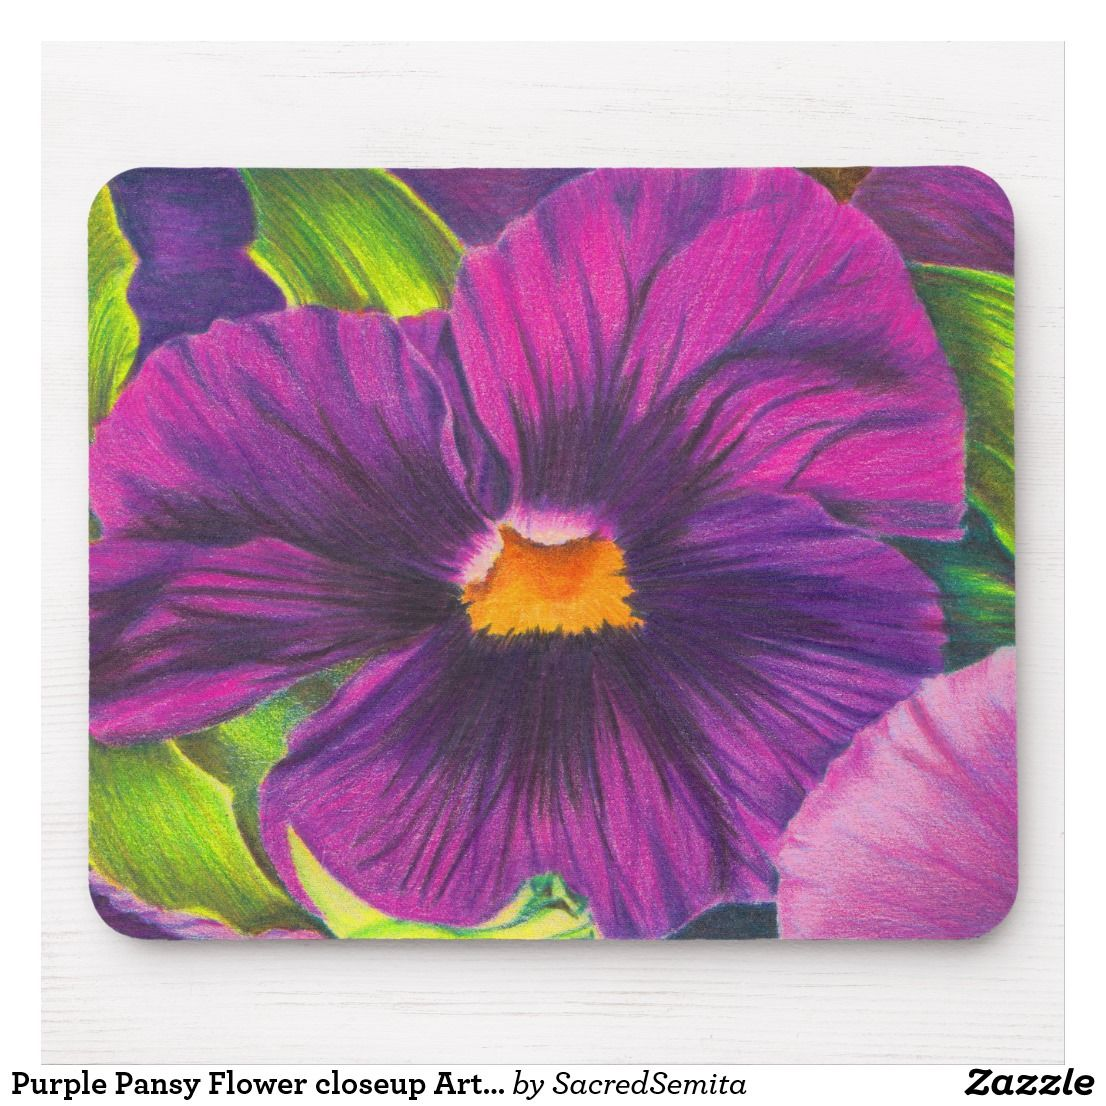 Purple Pansy Flower Closeup Art Print Mouse Pad Zazzle Com In 2020 Pansies Flowers Purple Pansy Pansies